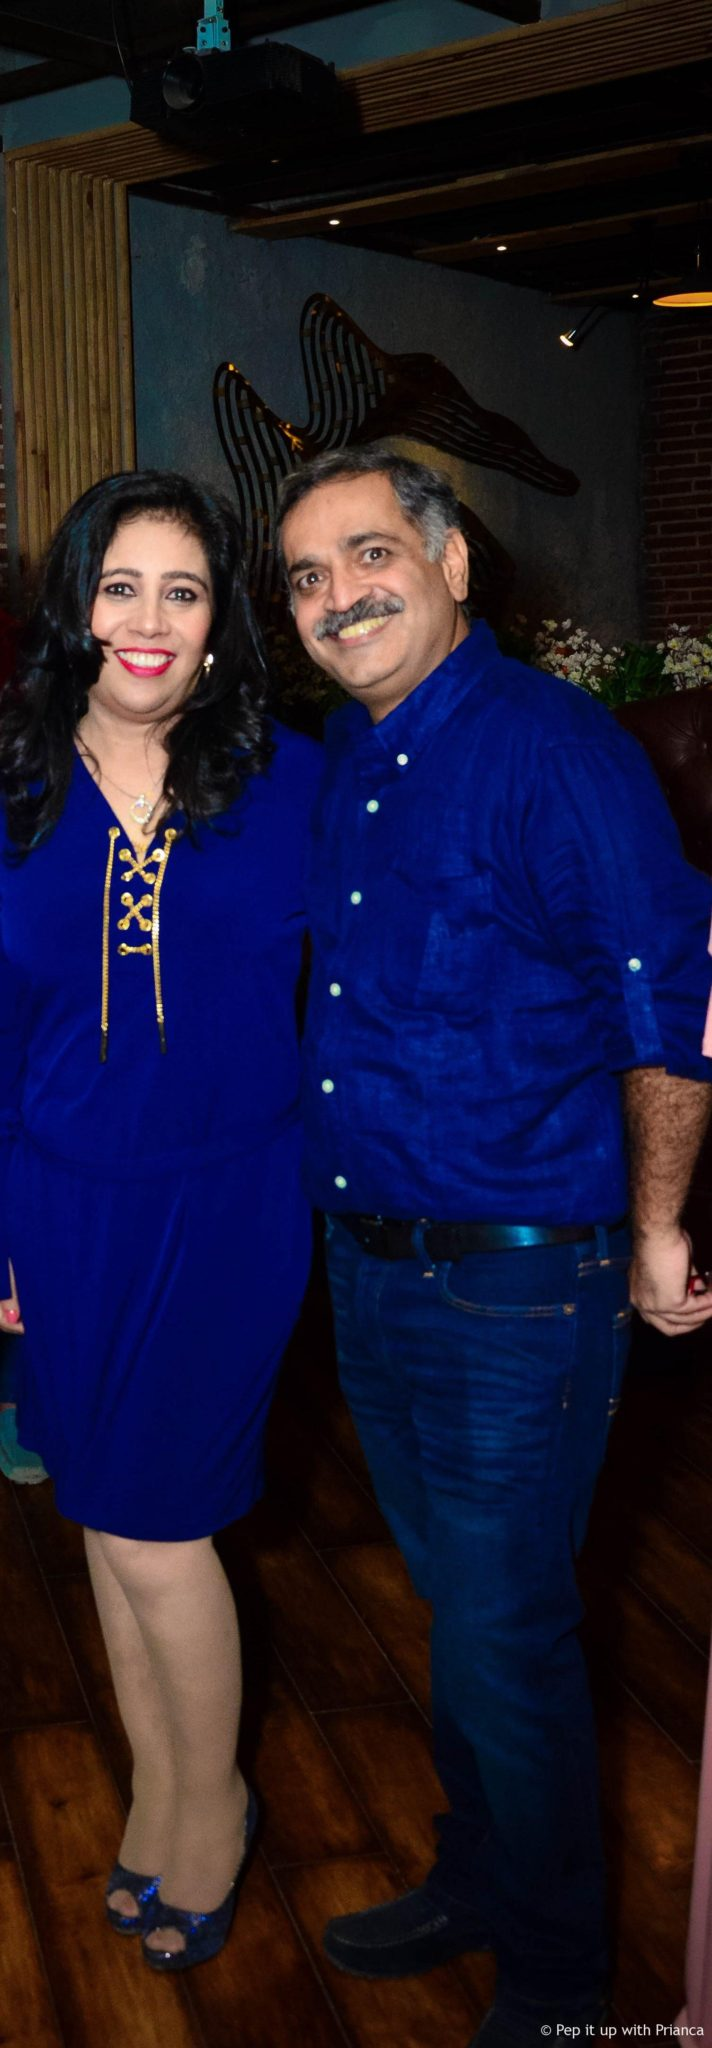 Namita Sood Rajeev Sood - Grub Capitol - The New Party Place in Town